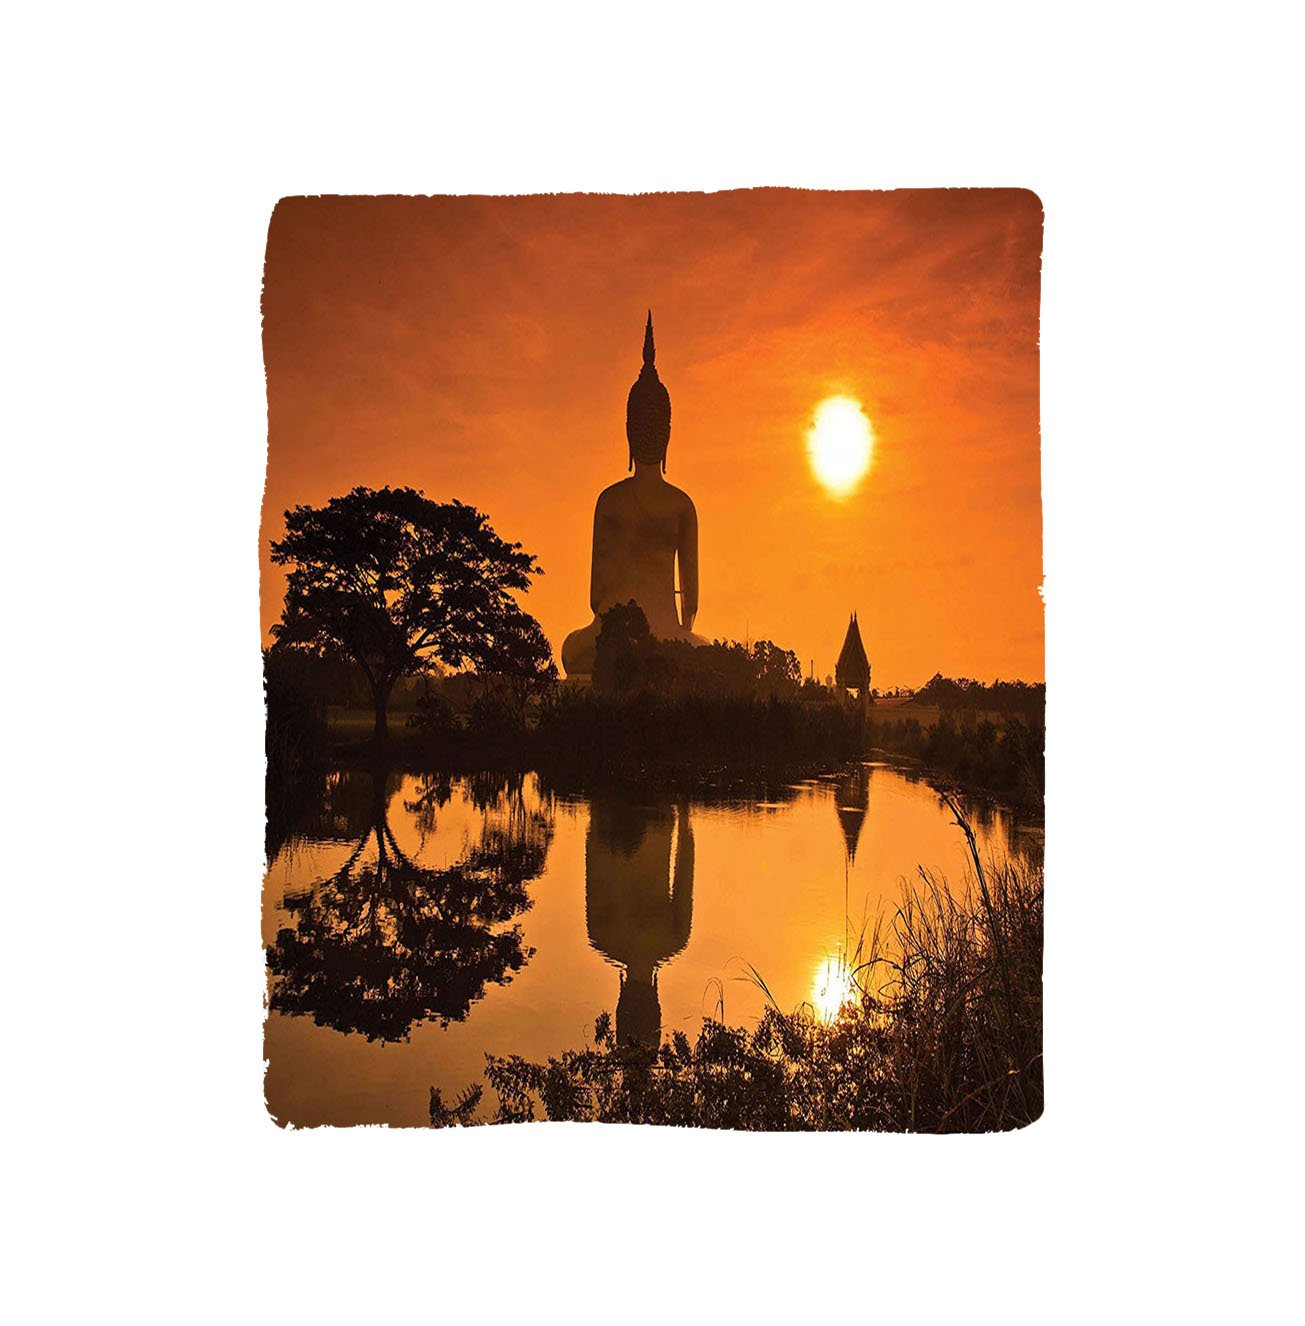 VROSELV Custom Blanket Orange Asian Big Giant Statue by the River at Sunset Thai Asian Culture Scene Yin Yang Print Bedroom Living Room Dorm Art Burnt Orange by VROSELV